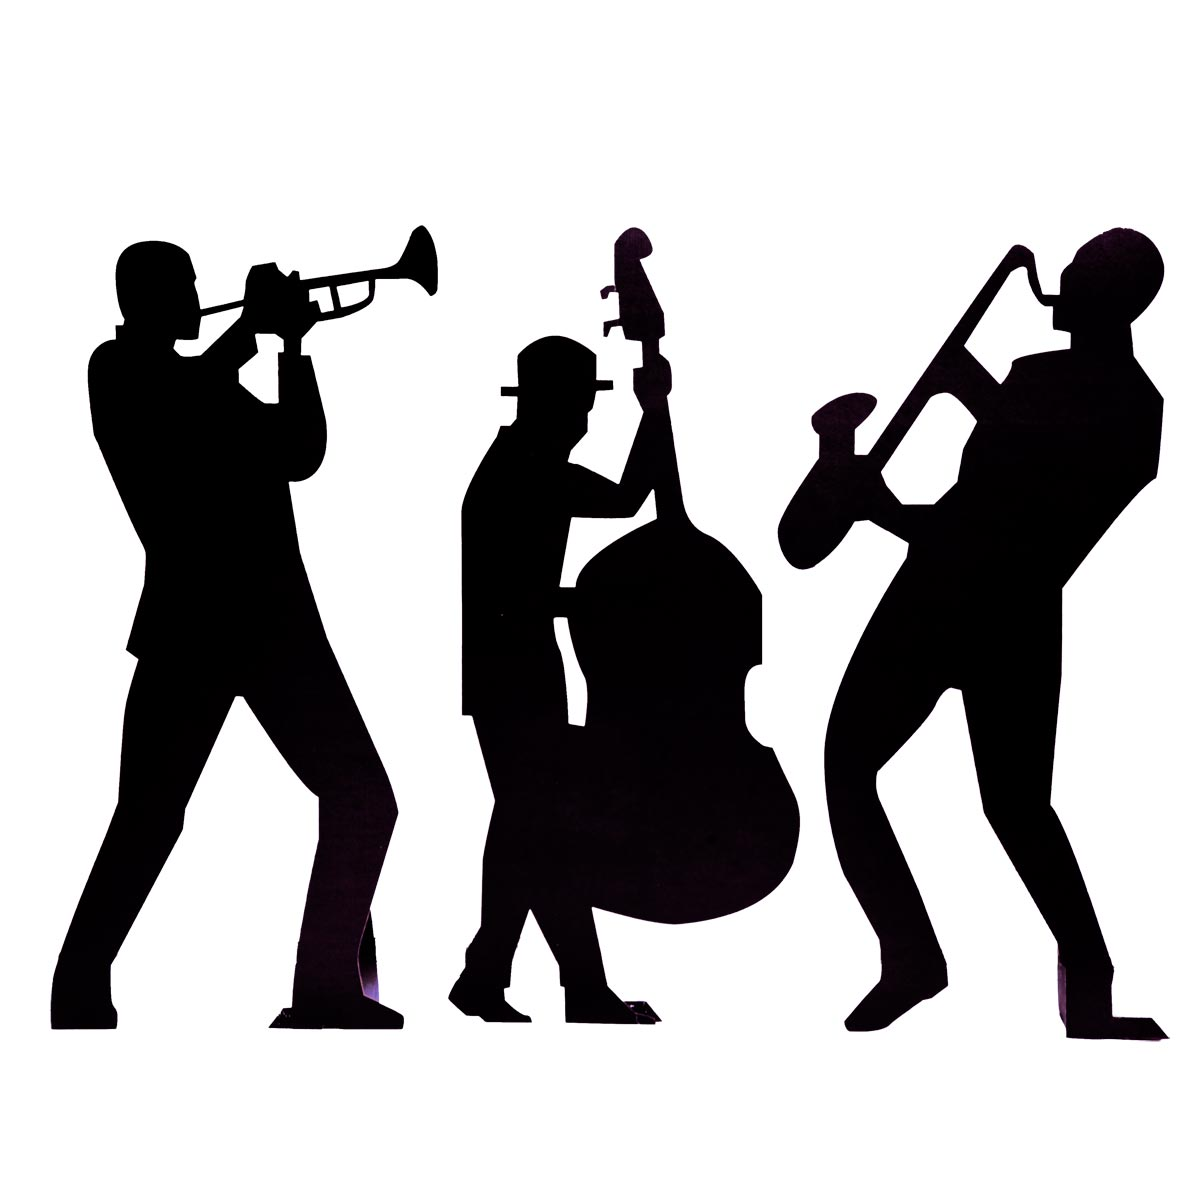 Free jazz clipart images. Band cliparts download clip